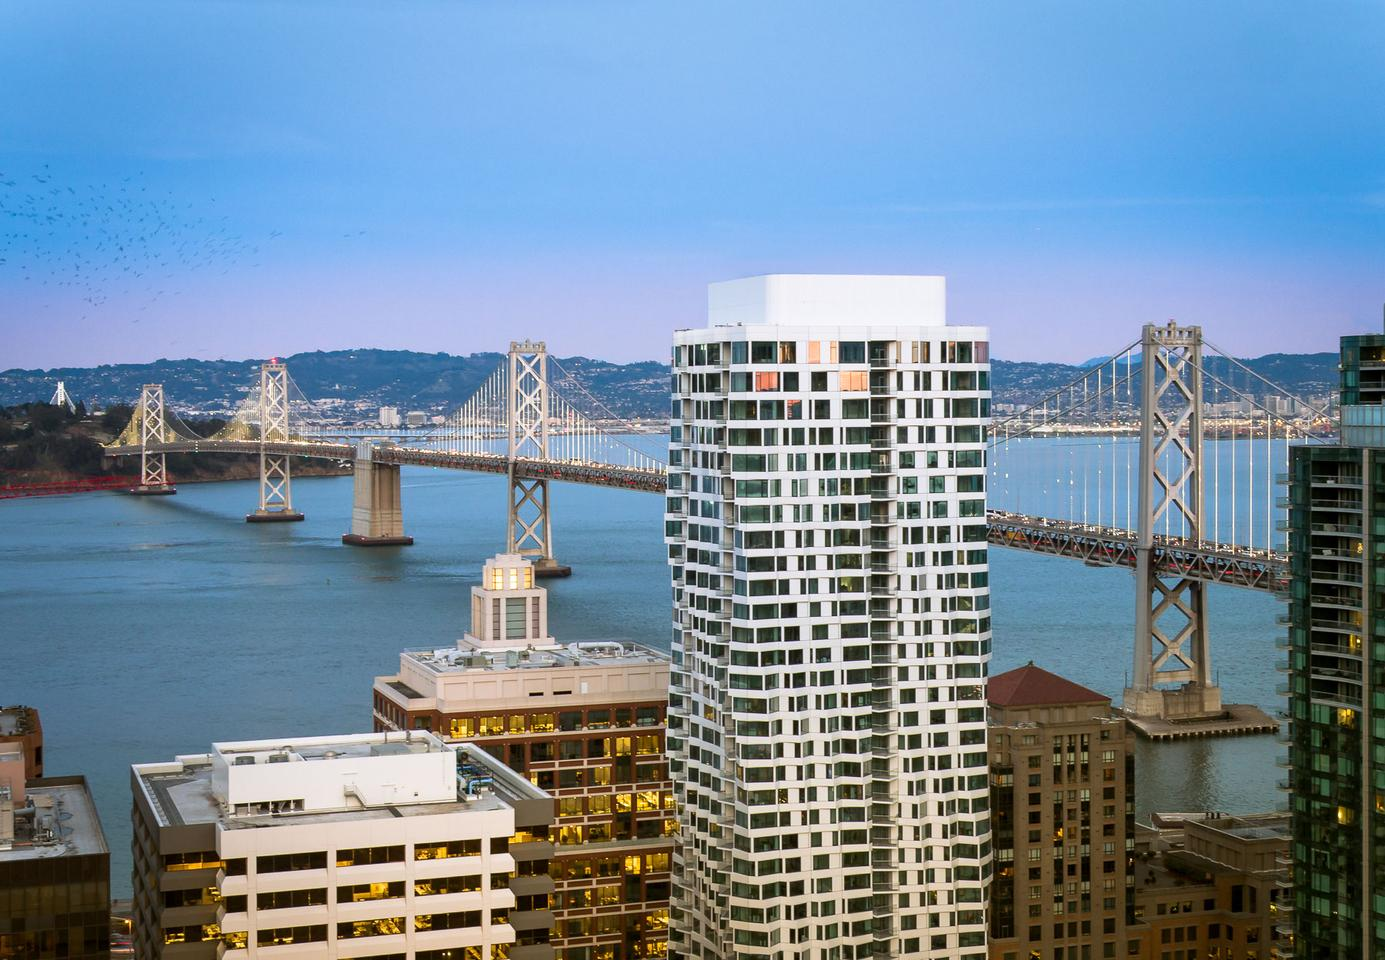 Mira is located in San Francisco and offers residents views of San Francisco Bay, the Bay Bridge, and the city skyline